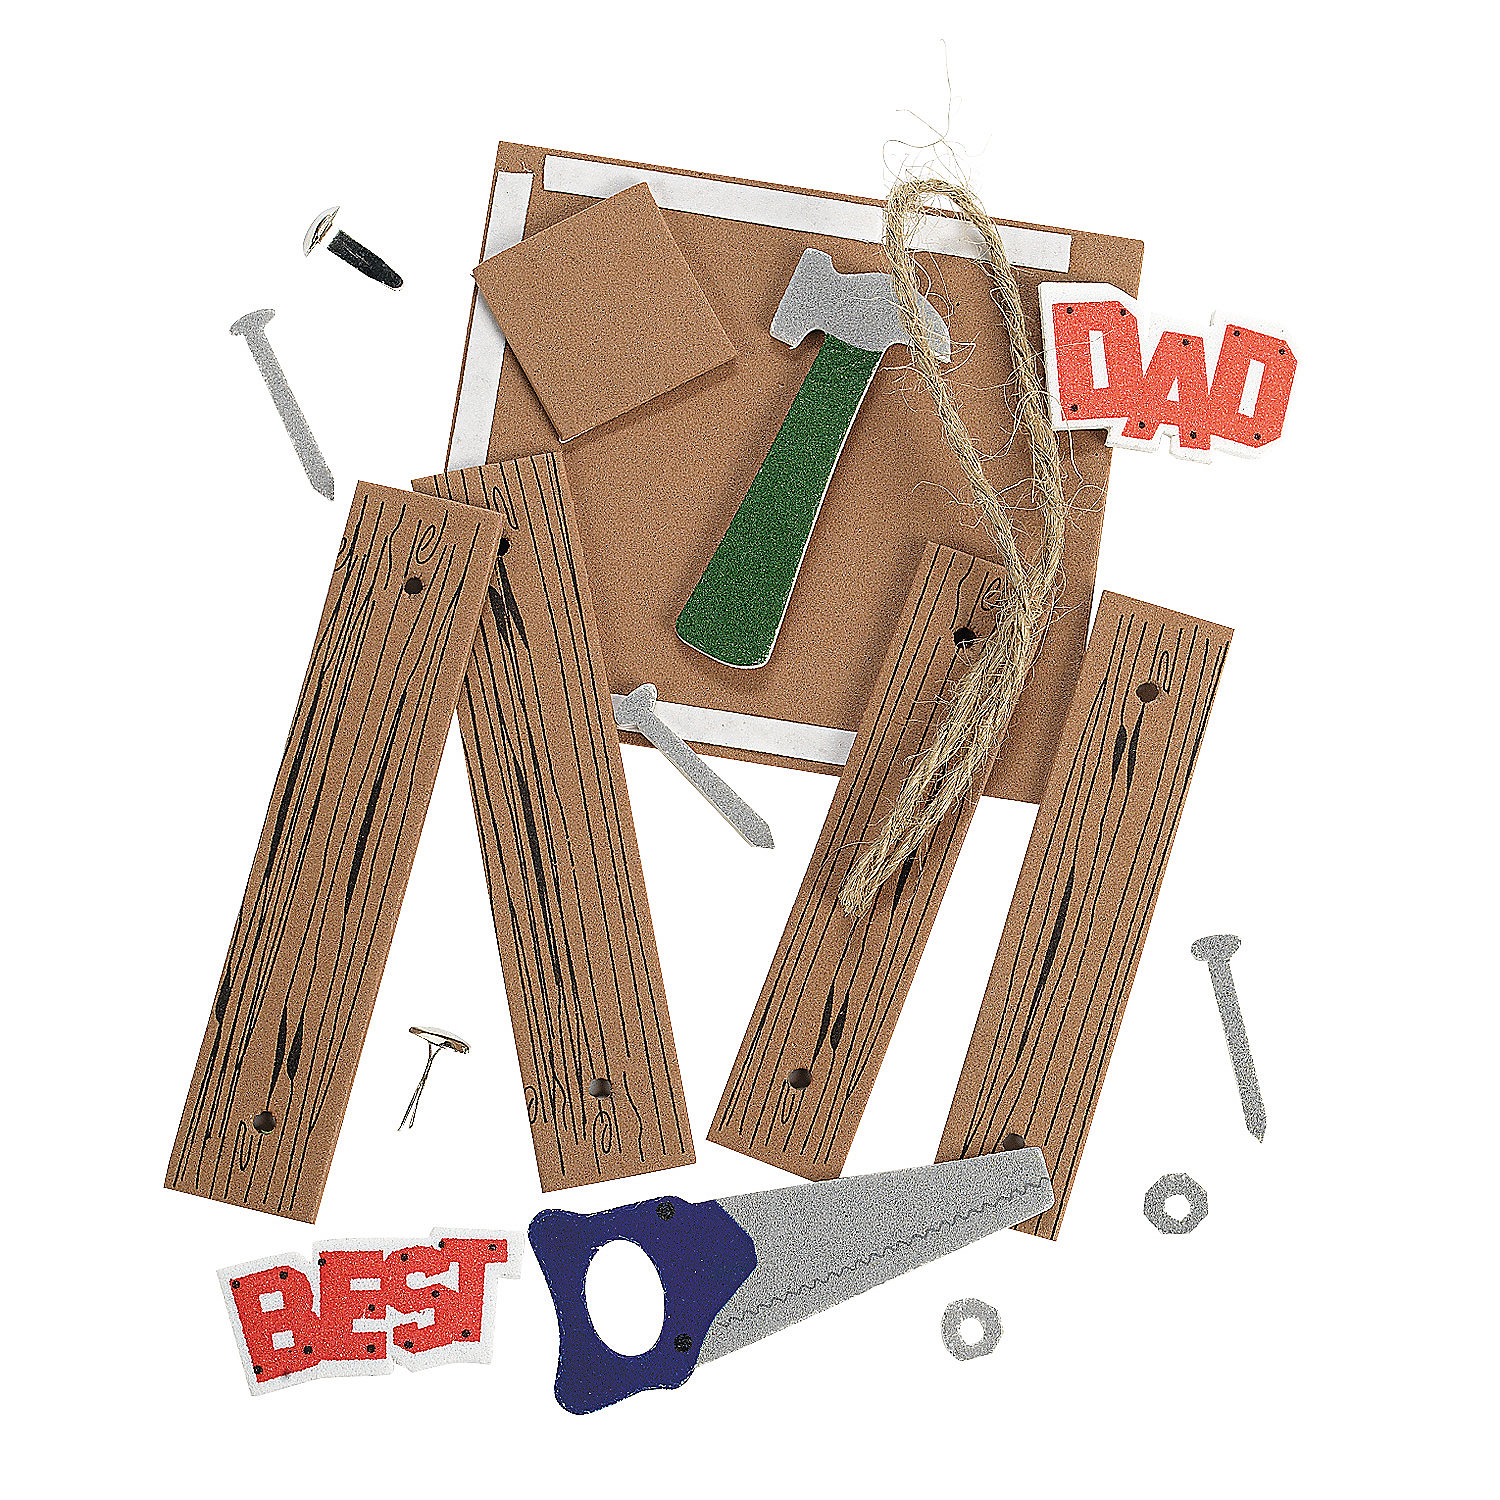 Dad tool picture frame ornament craft kit oriental trading for Photo frame ornament craft